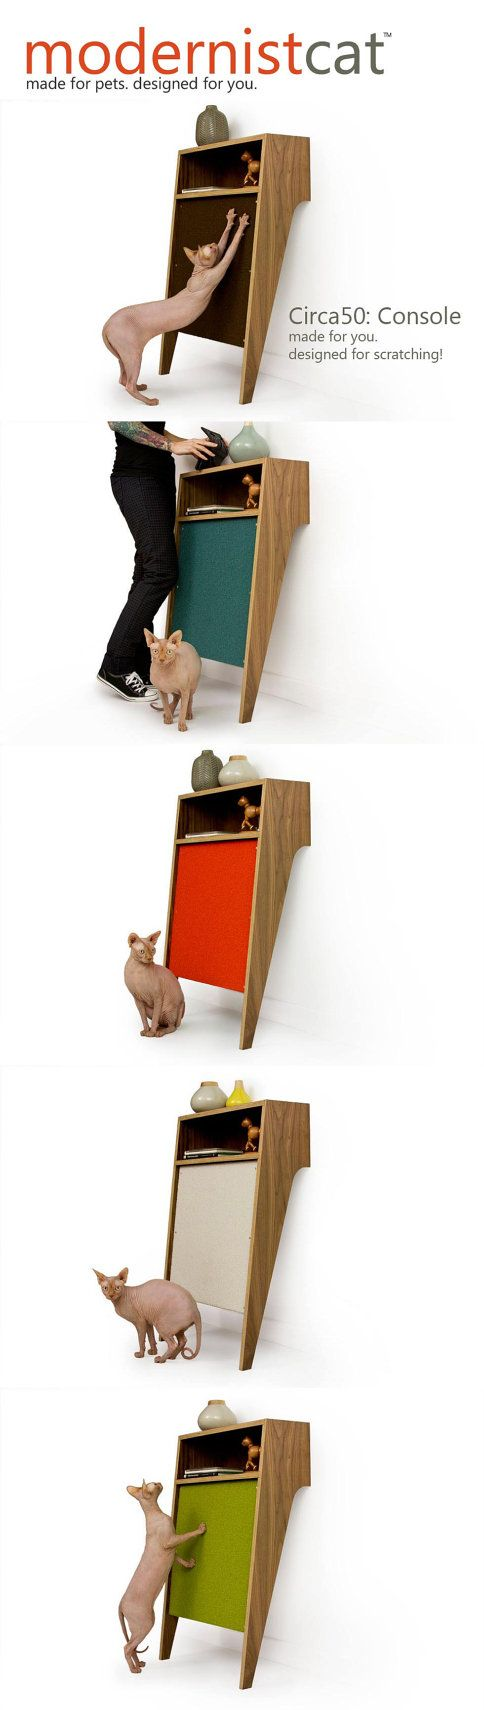 Mid Century Modern Pet Furniture // Cat Scratcher by modernistcat, $399.00 For that price, i'll make my own tho!